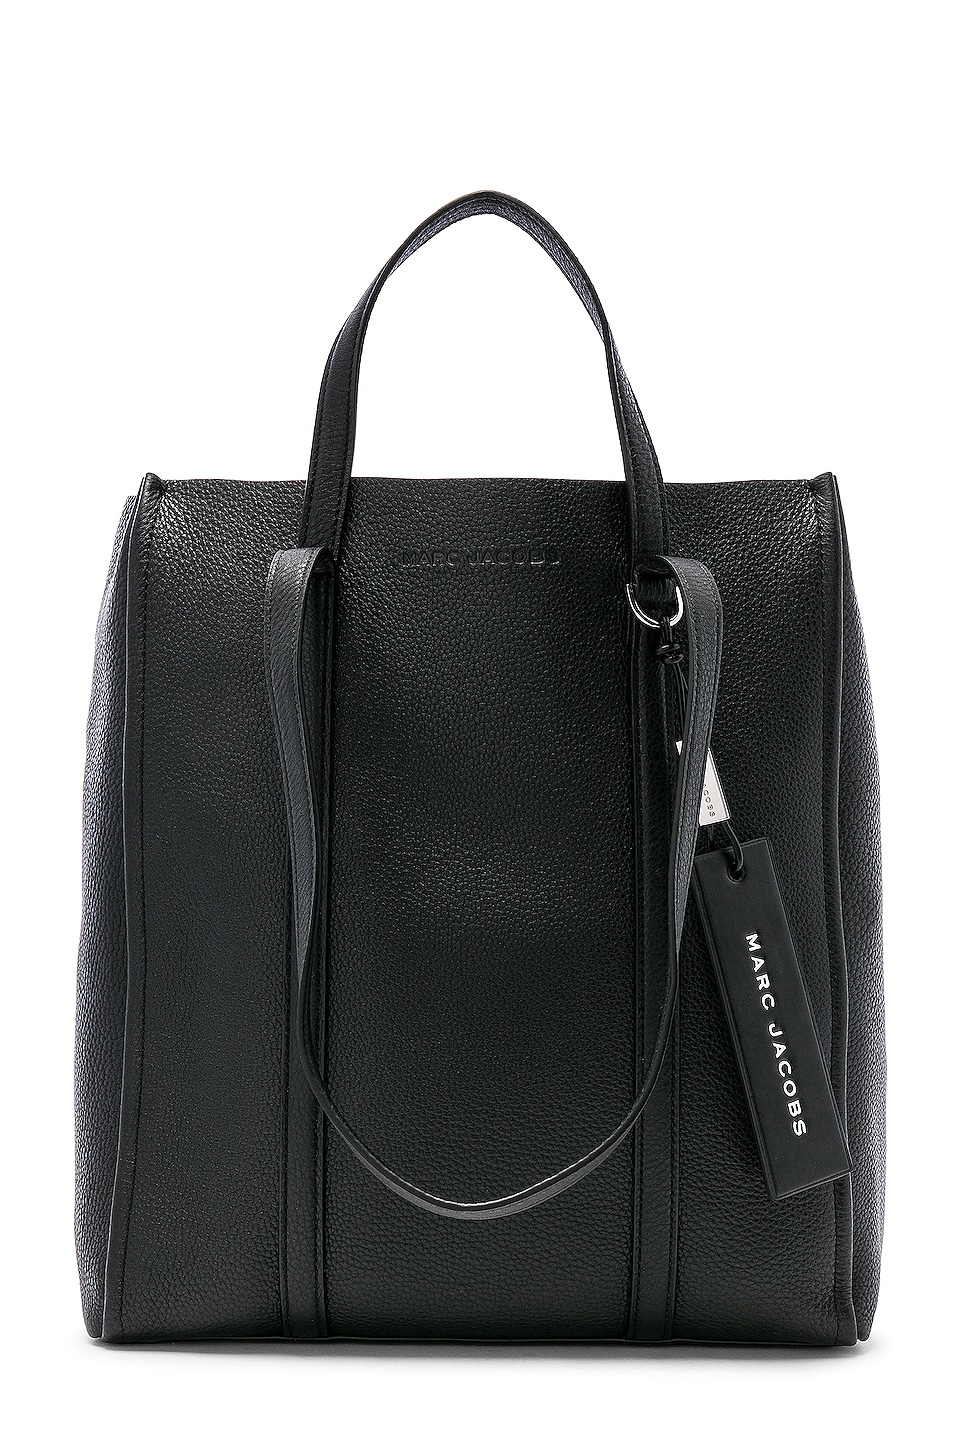 Marc Jacobs The Tag Tote 31 in Black